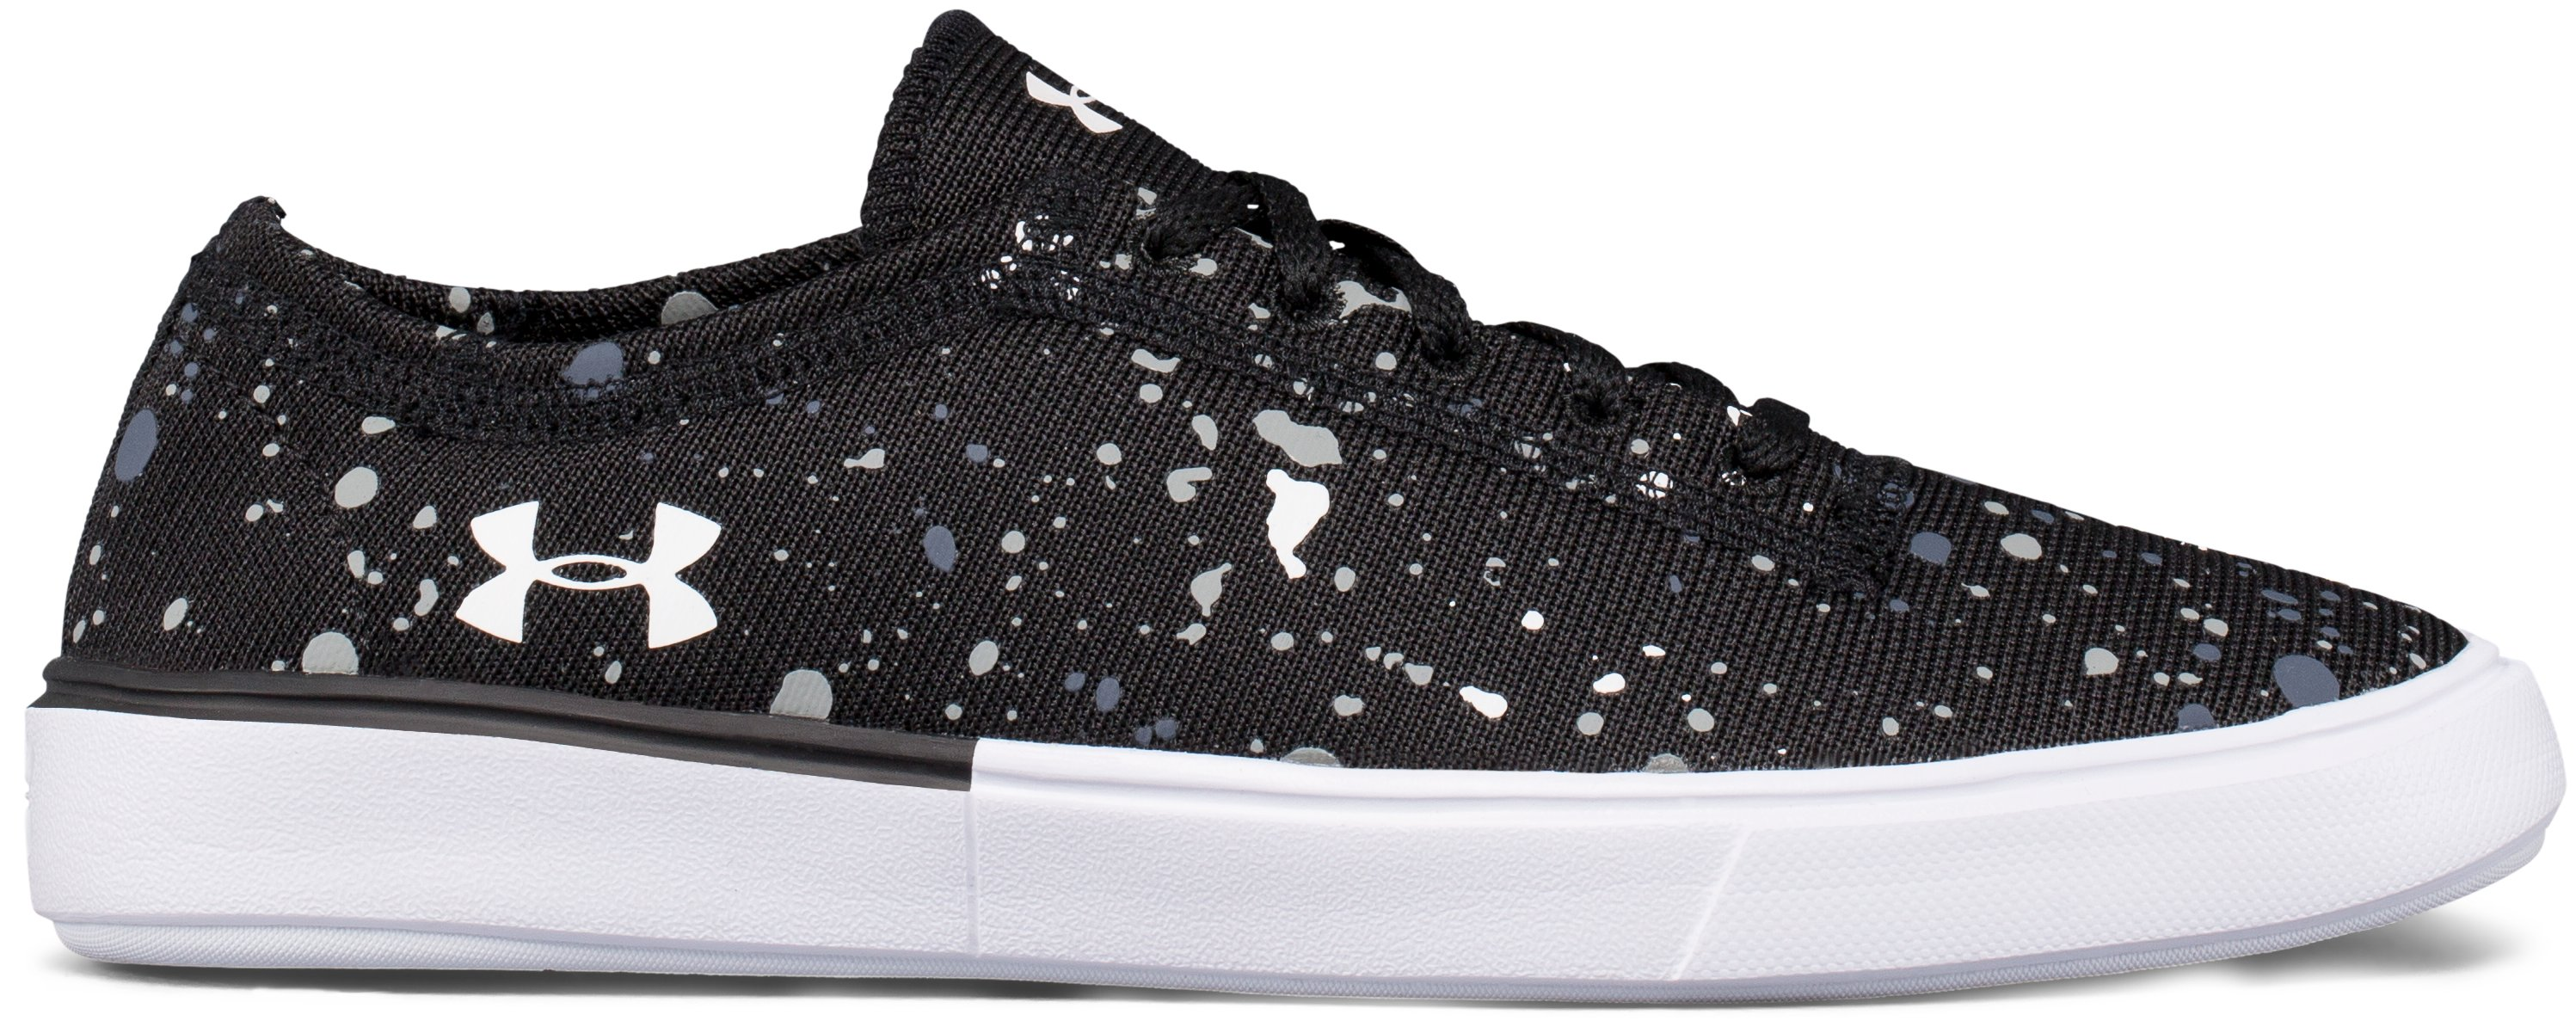 Girls' Grade School UA KickIt2 Splatter Lifestyle Shoes, Black